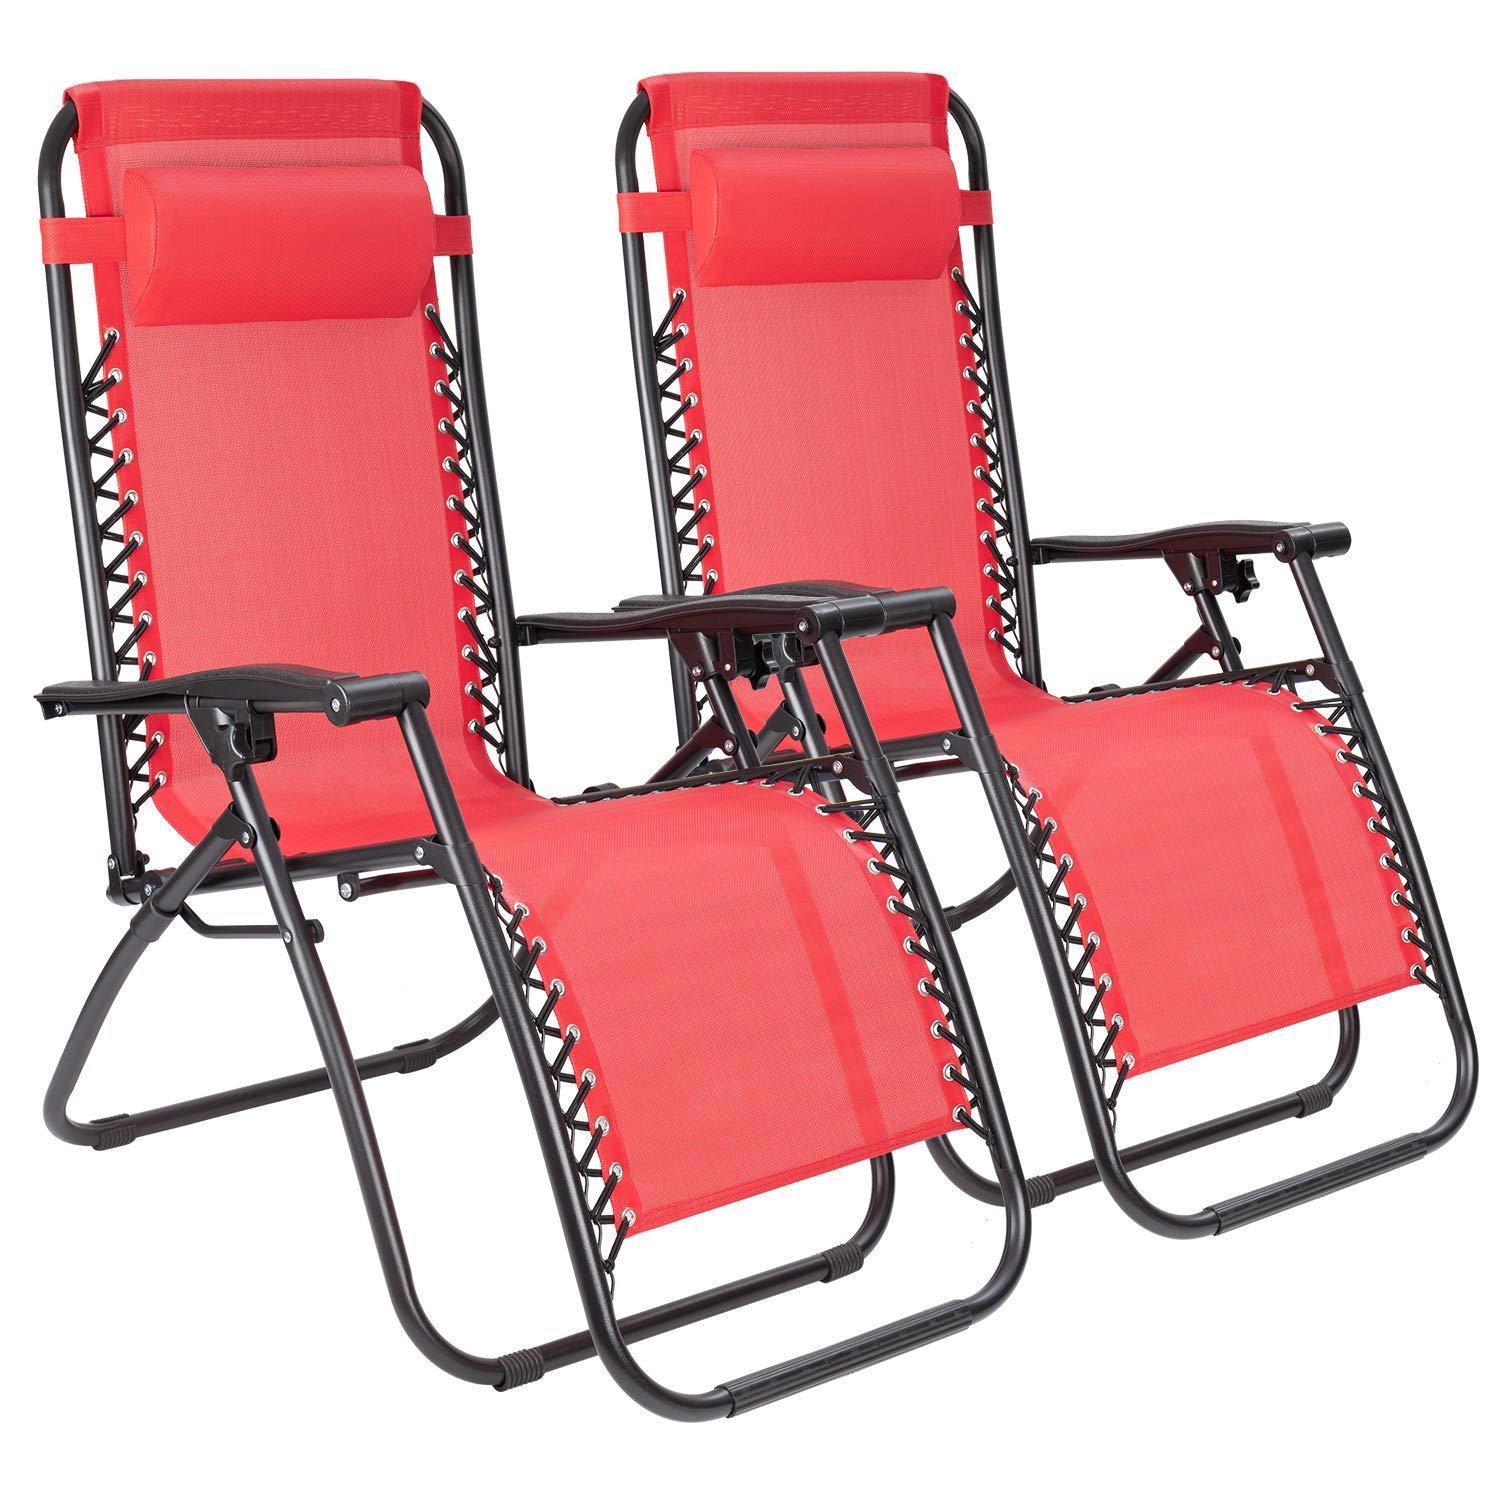 JUMMICO Zero Gravity Chair Patio Outdoor Adjustable Reclining Folding Chair Lawn Lounge Chair for Deck Beach Yard and Beach with Pillows Set of 2 Red